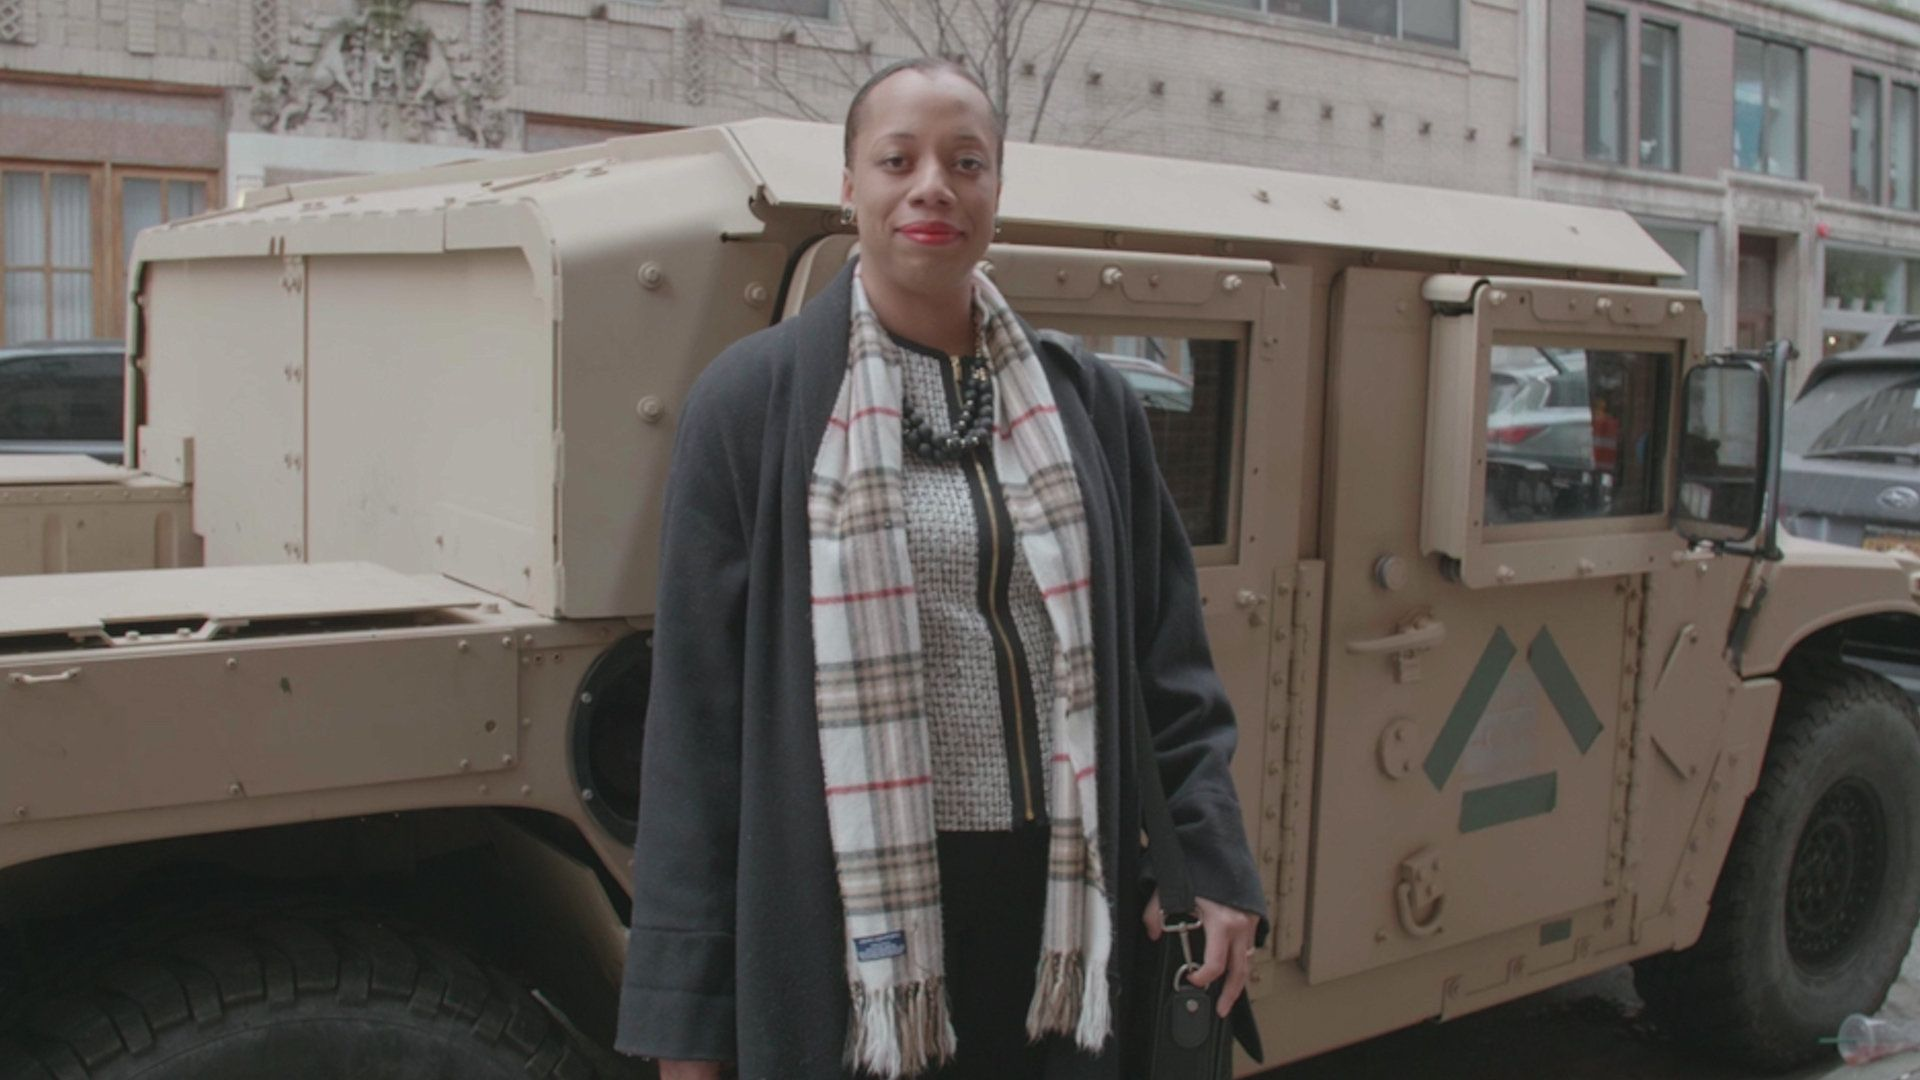 Veteran Asha C. Castleberry has been fighting for more visibility for women of color vets back home.